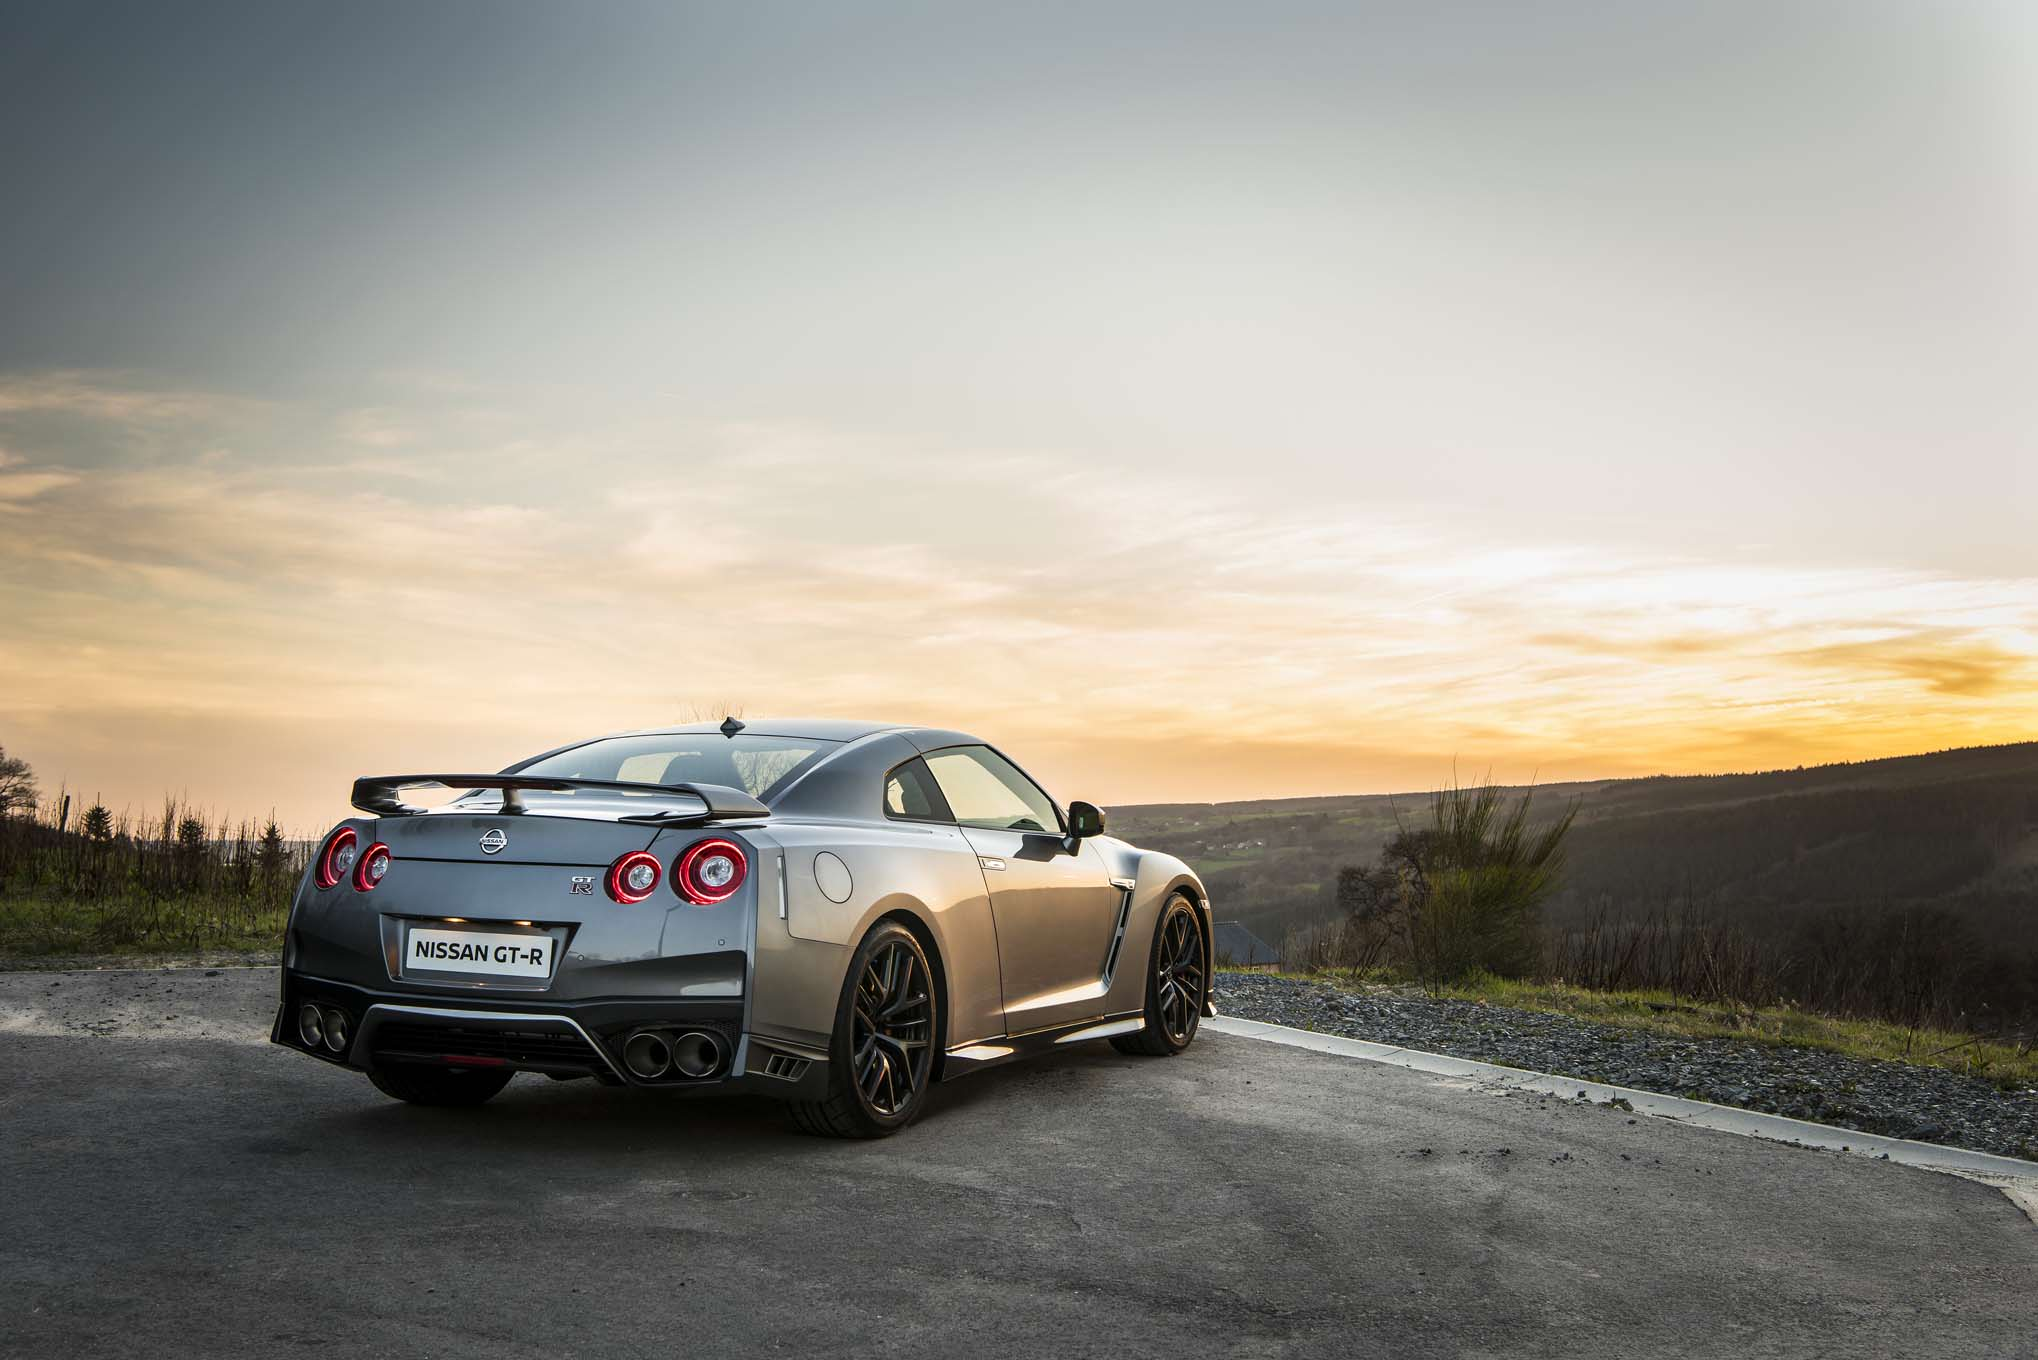 2017 Nissan Gtr First Look Wallpaper Hd: Top Free Nissan GT-R Backgrounds